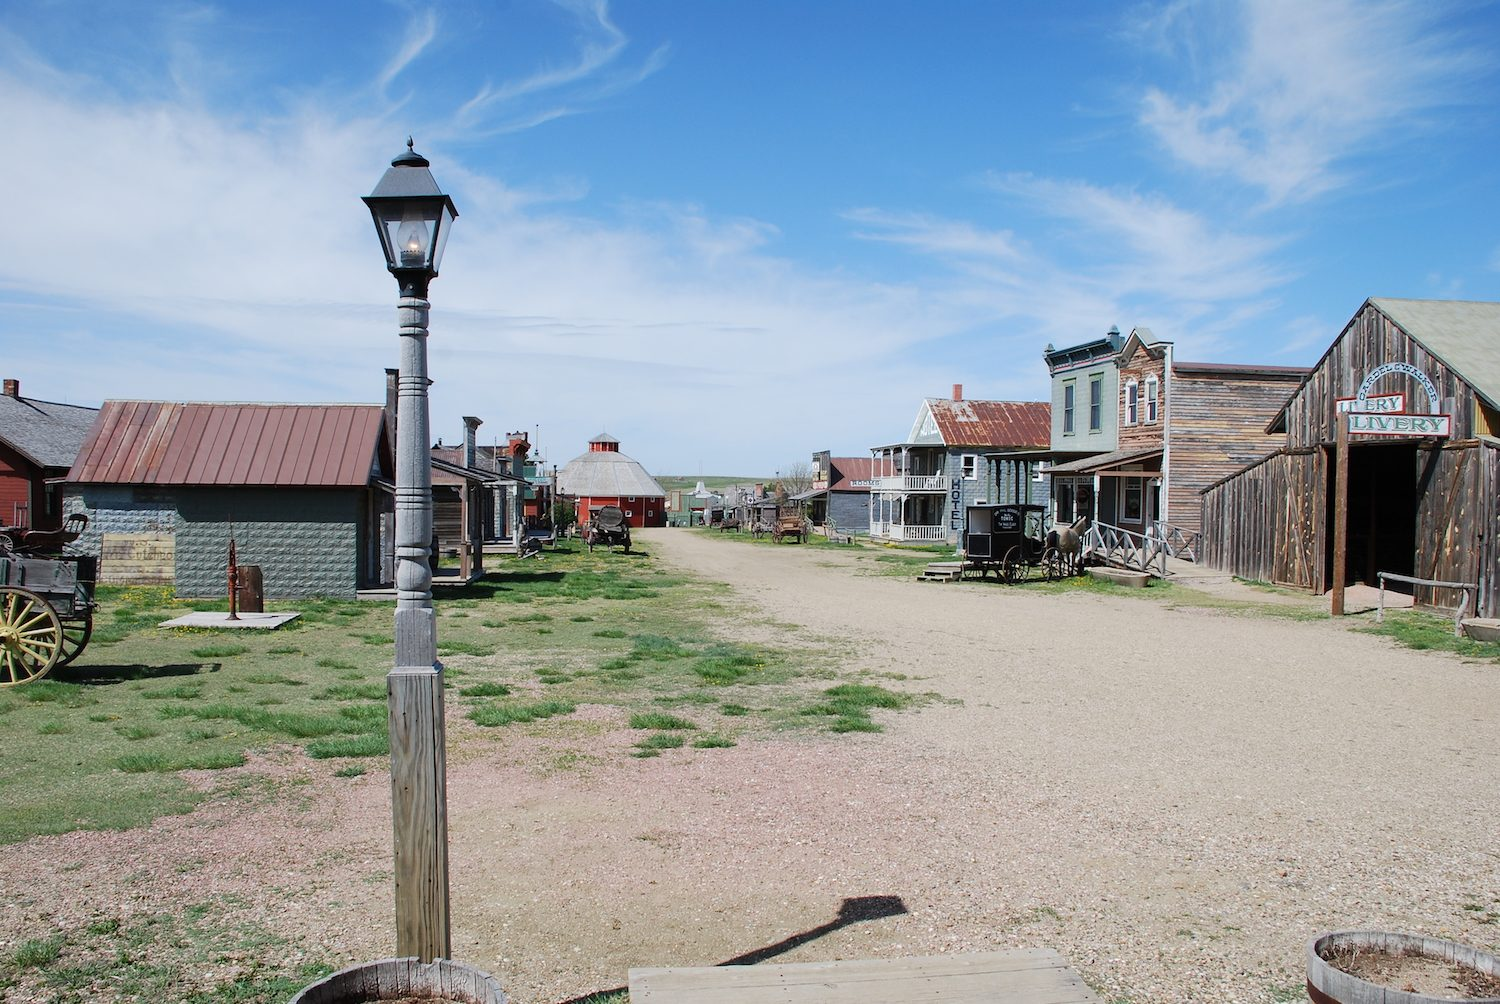 1880 Town, South Dakota